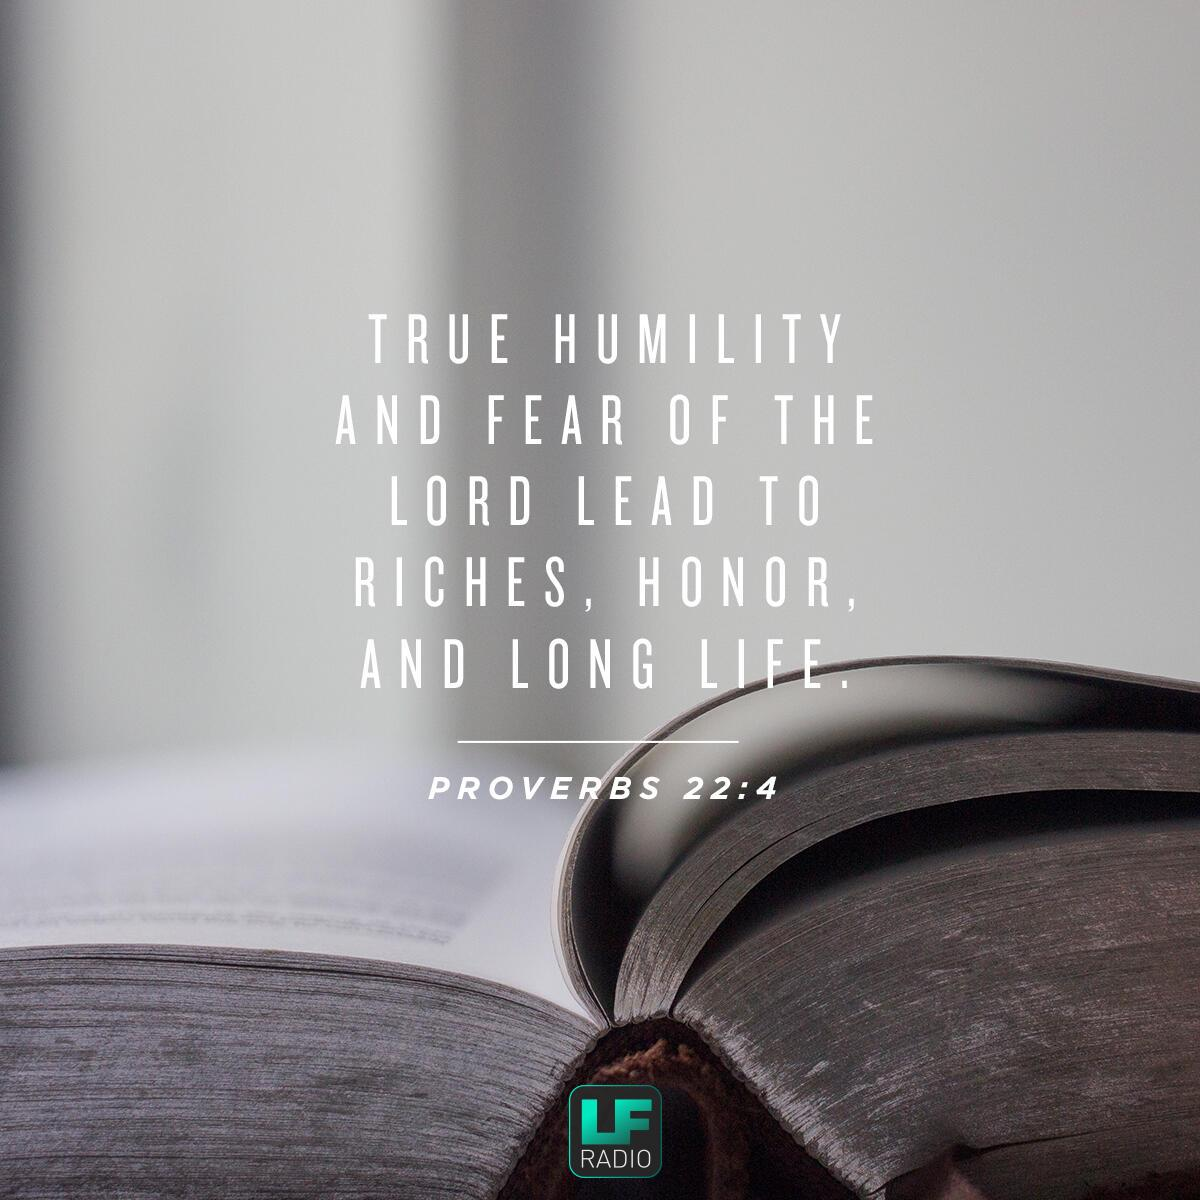 Proverbs 22:4 - Verse of the Day